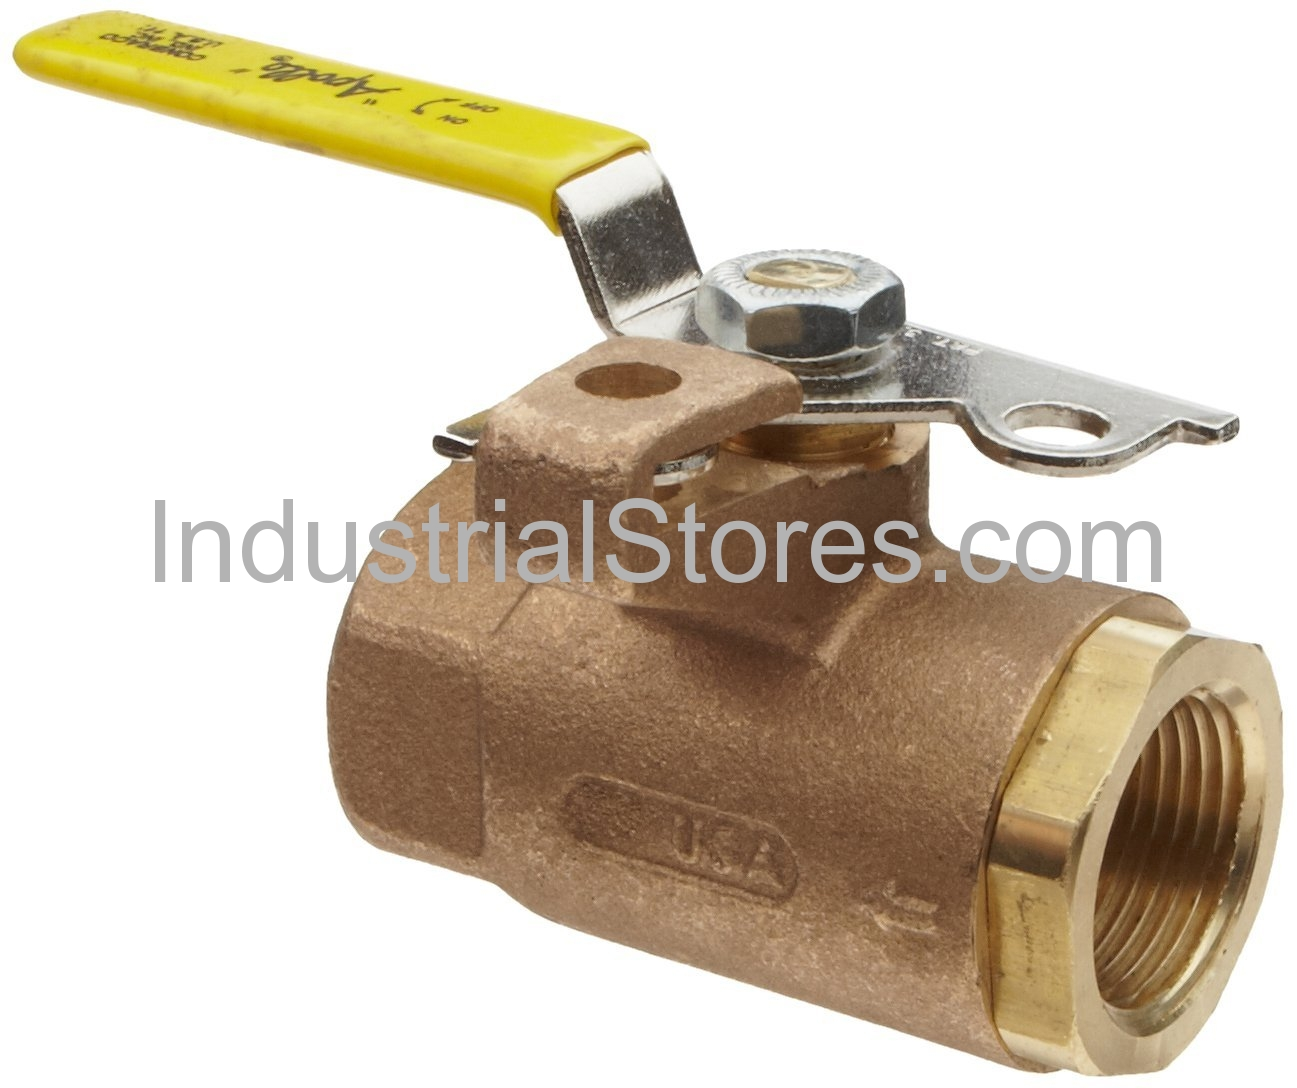 """Conbraco 77-105-01 Bronze Full-Port Ball Valve 1"""" Threaded 600psig WOG Cold Non-Shock 150psig Saturated Steam"""